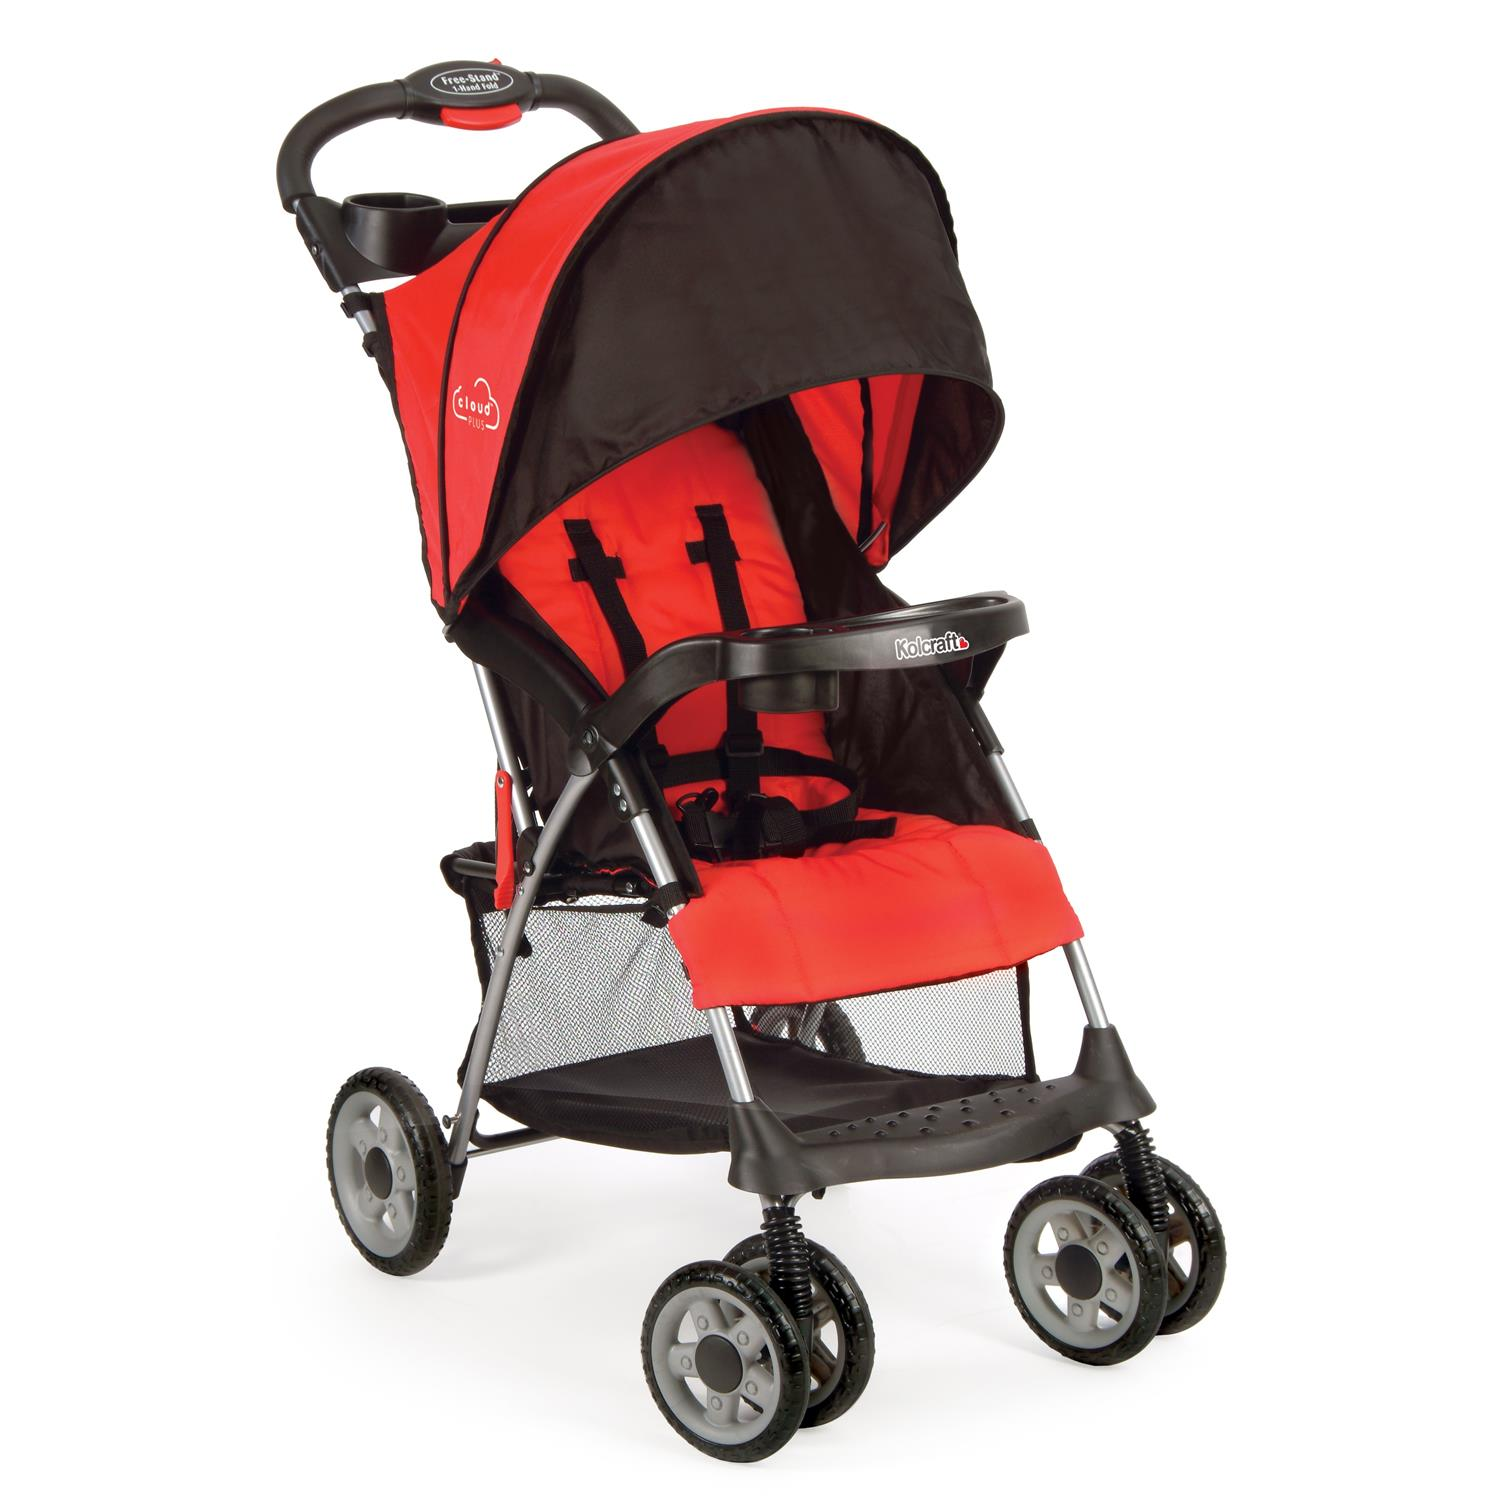 Cloud Plus Lightweight Stroller Red by Kolcraft